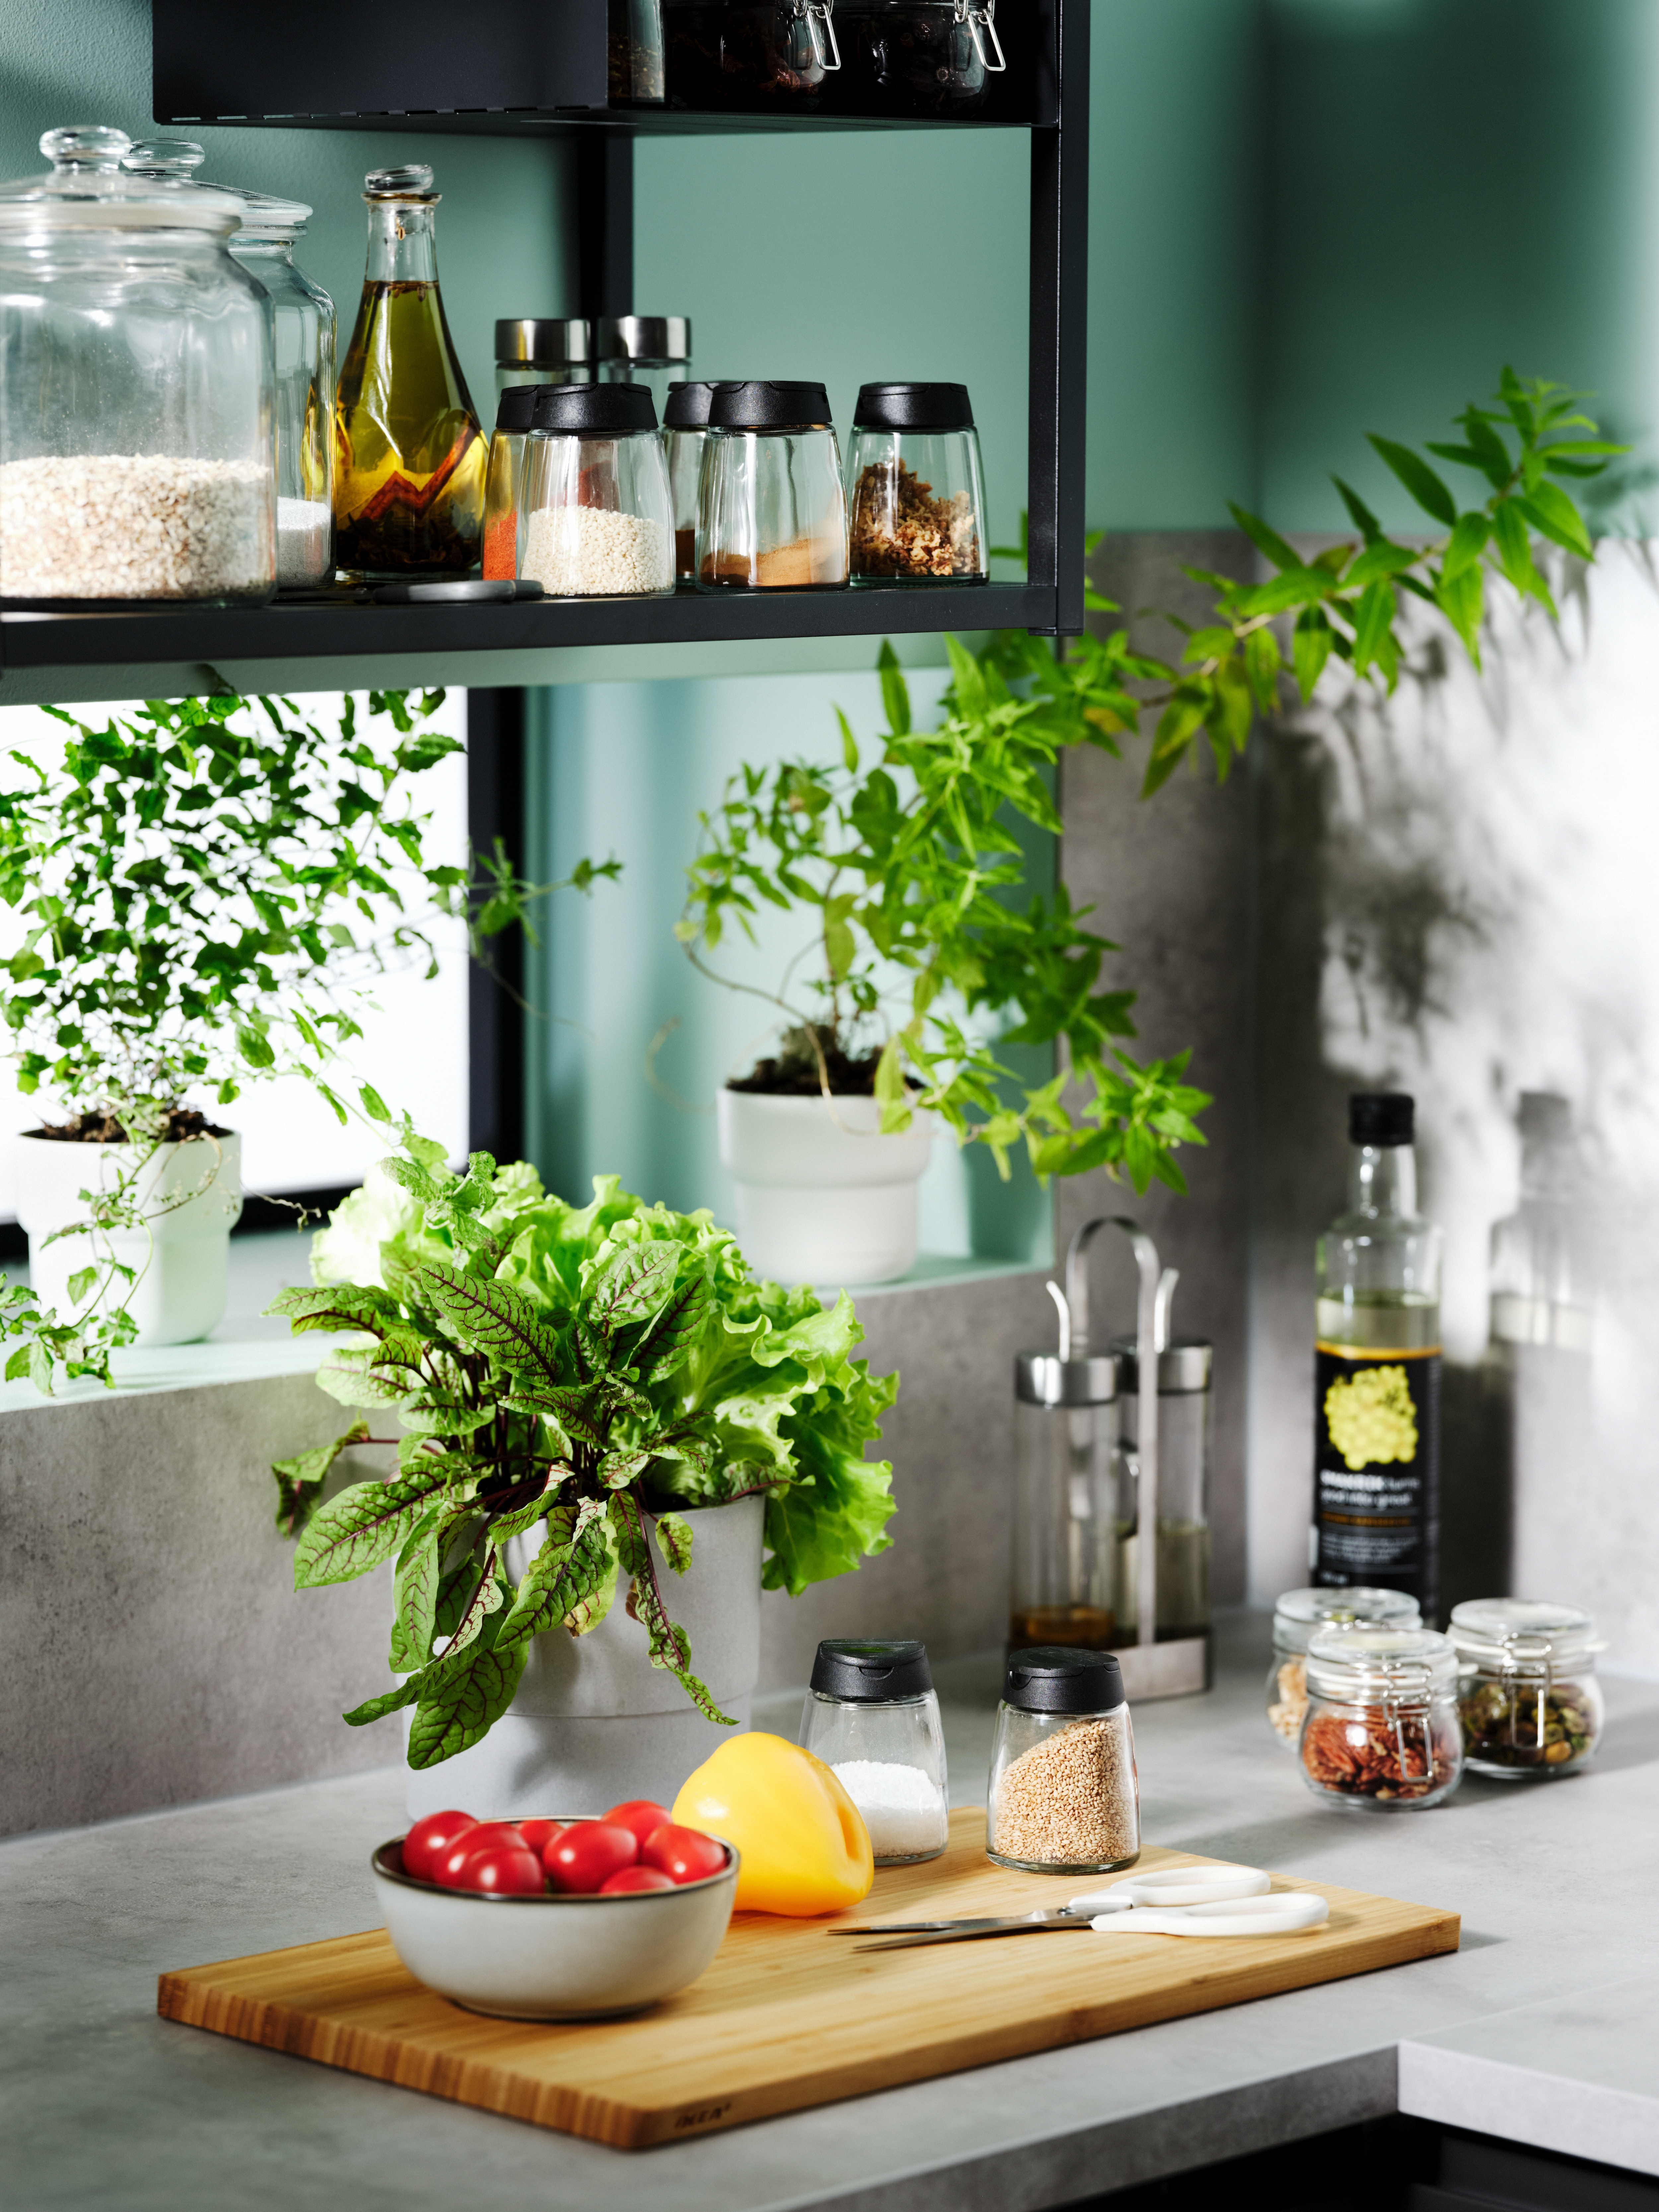 Kitchen corner with fresh herbs in plant pots, spices in IKEA 365+ jars and other salad-making accessories.